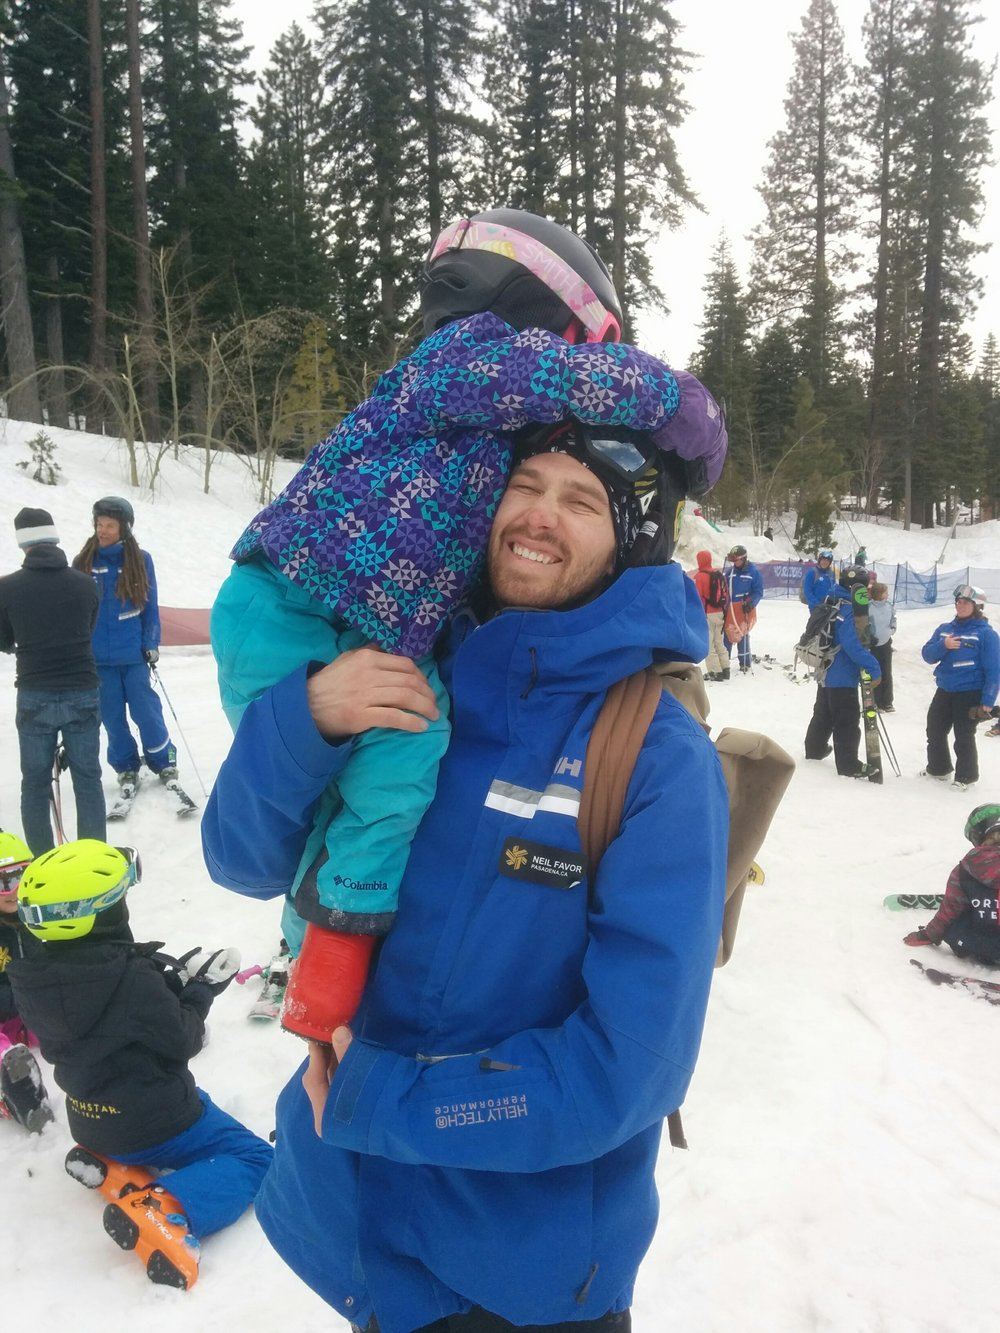 A typical day for Kelly means skiing and goofing off with her favorite coaches! Here she is with Northstar Ski Teams Coach Neil Favor.